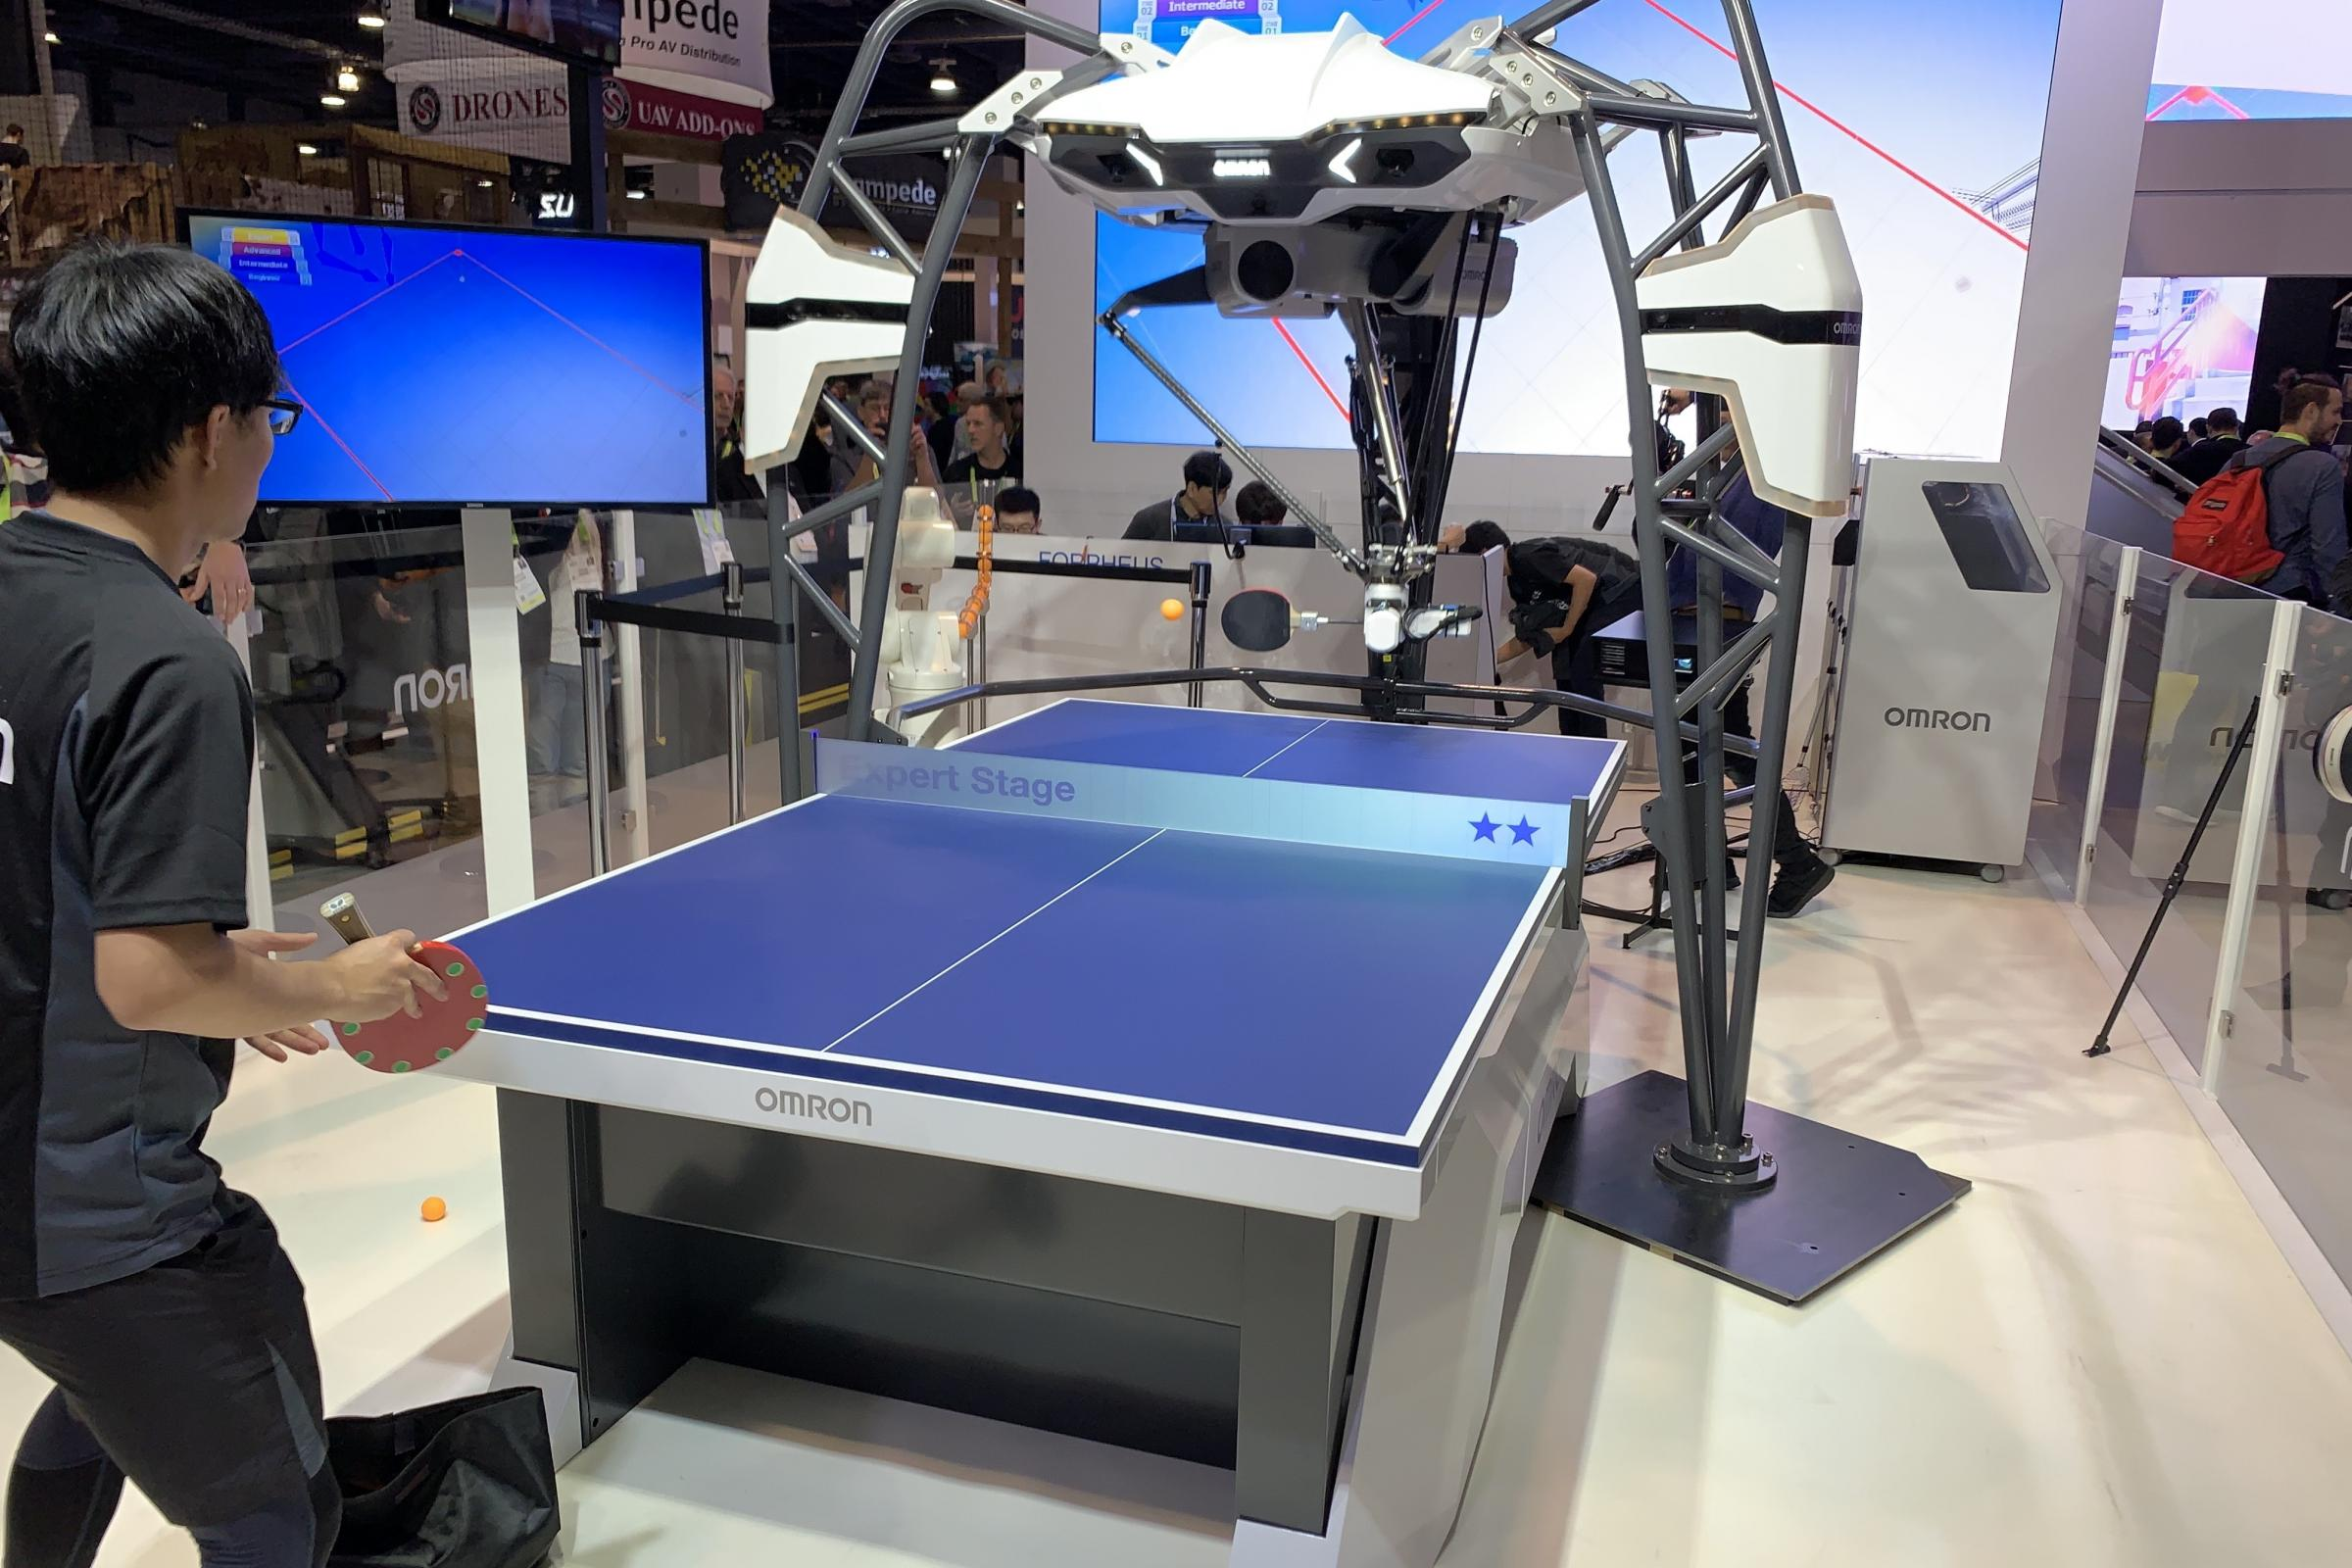 The Omron artificial intelligence-powered FORPHEUS robot